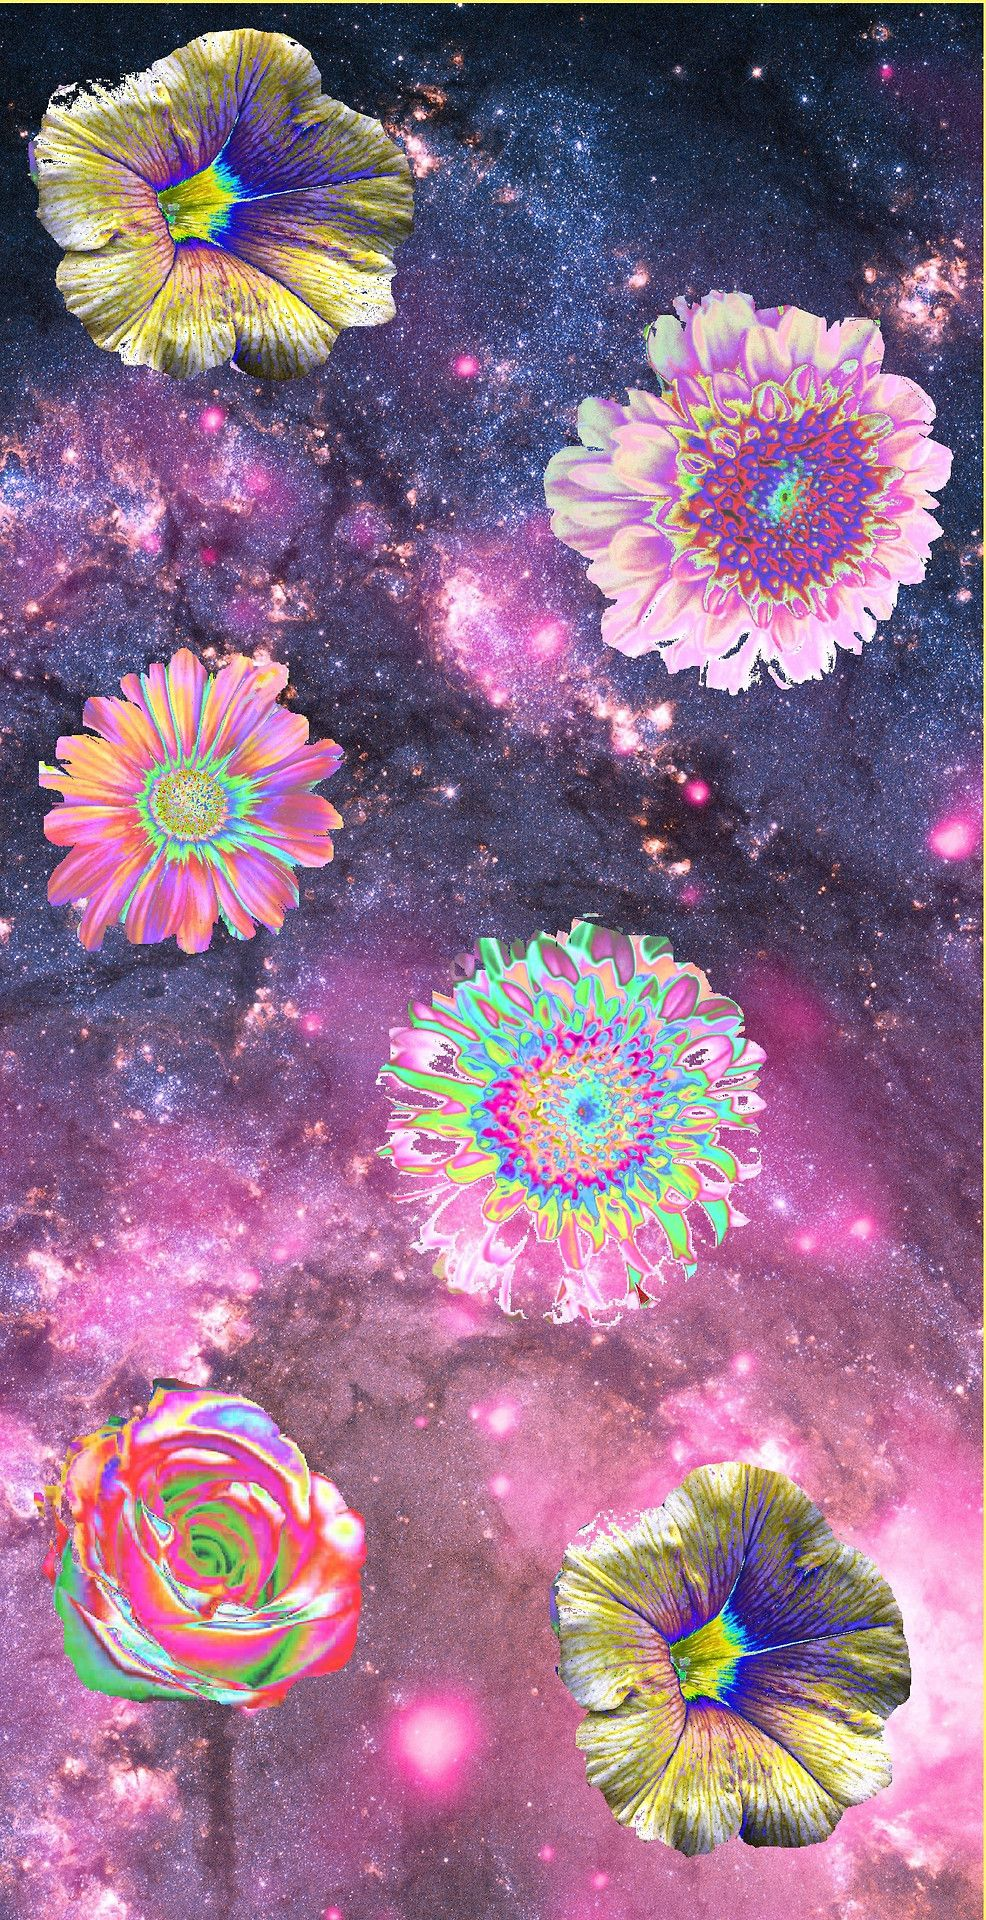 art trippy rainbow psychedelic space galaxy trip flower